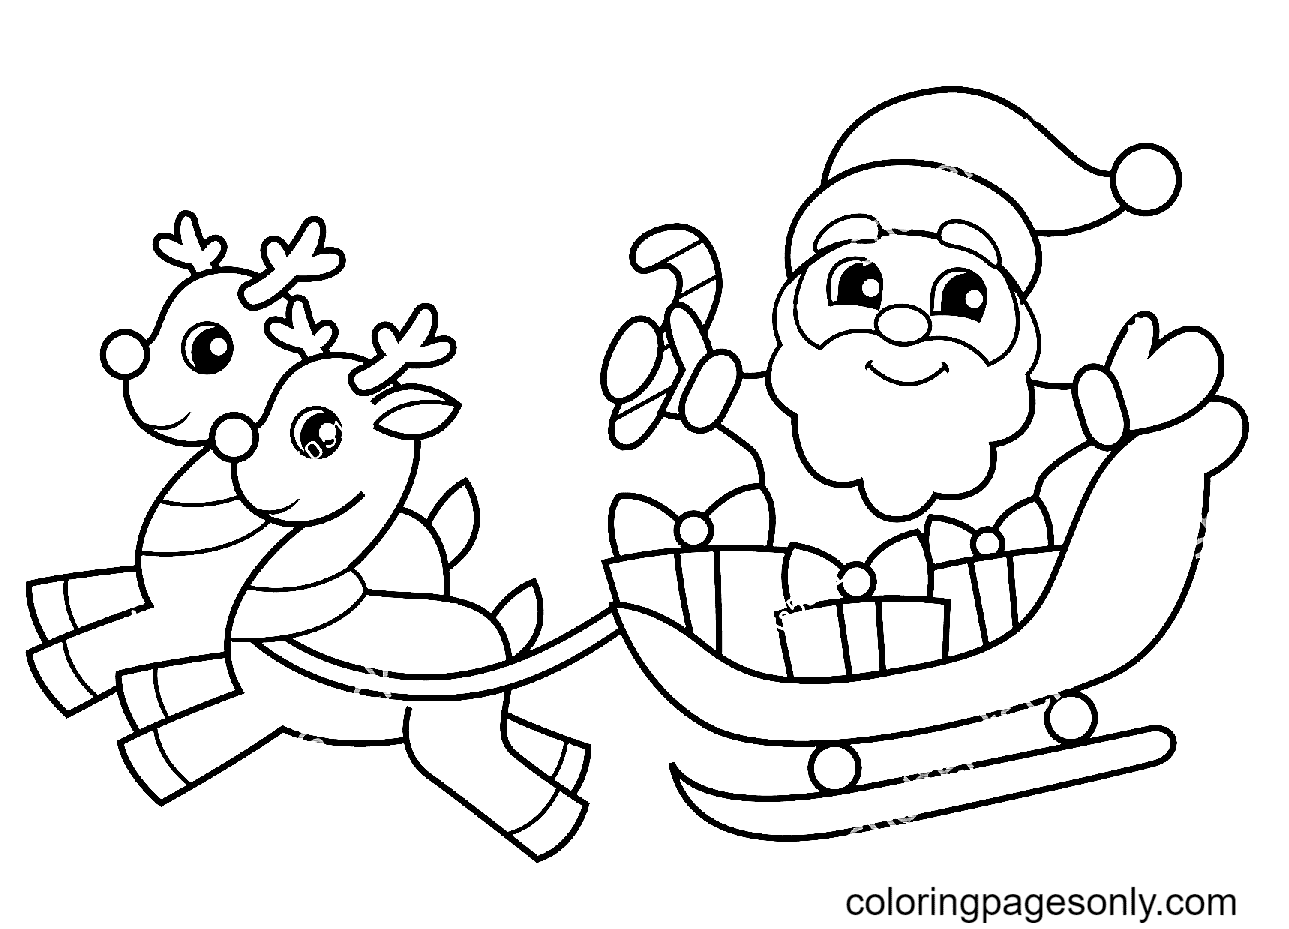 Santa Claus Flying on a Sleigh with Presents and Reindeer Coloring Page